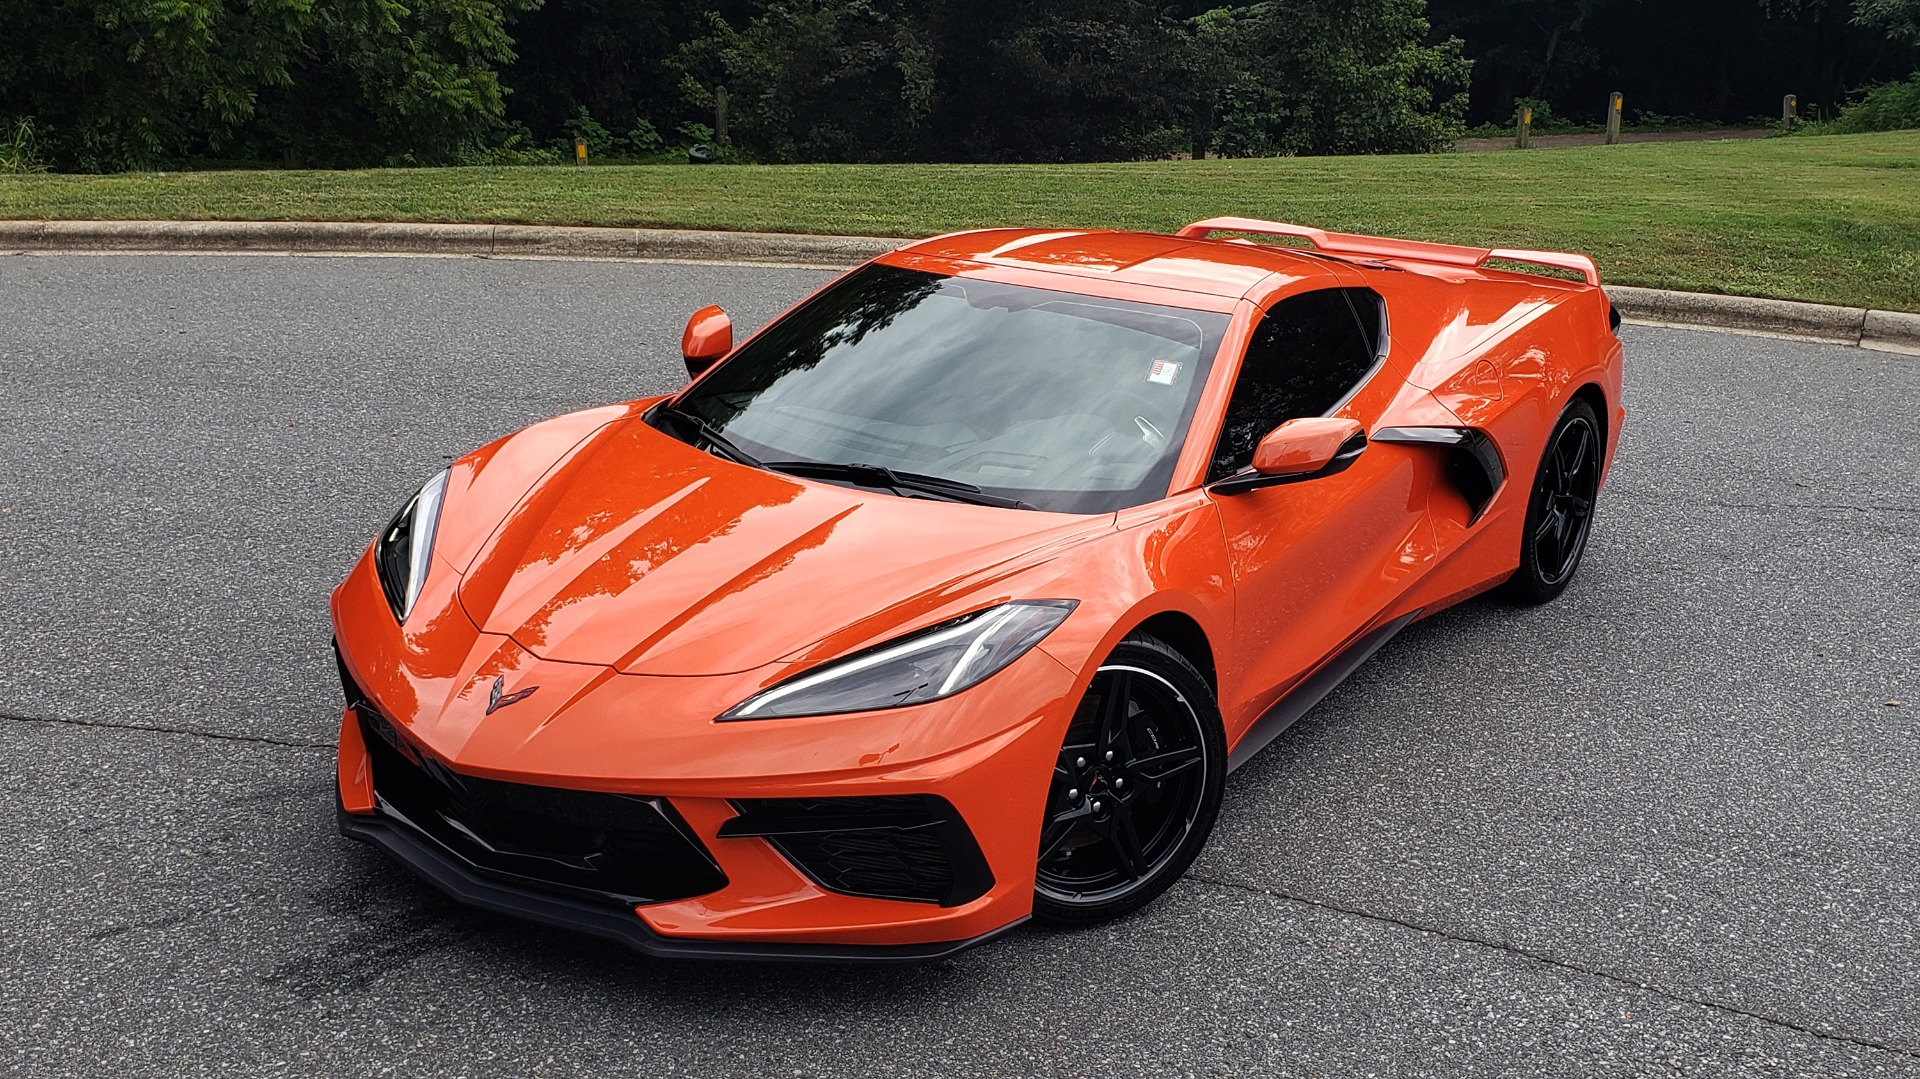 Used 2020 Chevrolet CORVETTE C8 STINGRAY 2LT / 6.2L V8 / 8-SPD AUTO / NAV / BOSE / REARVIEW / DATA RECOR for sale Sold at Formula Imports in Charlotte NC 28227 3